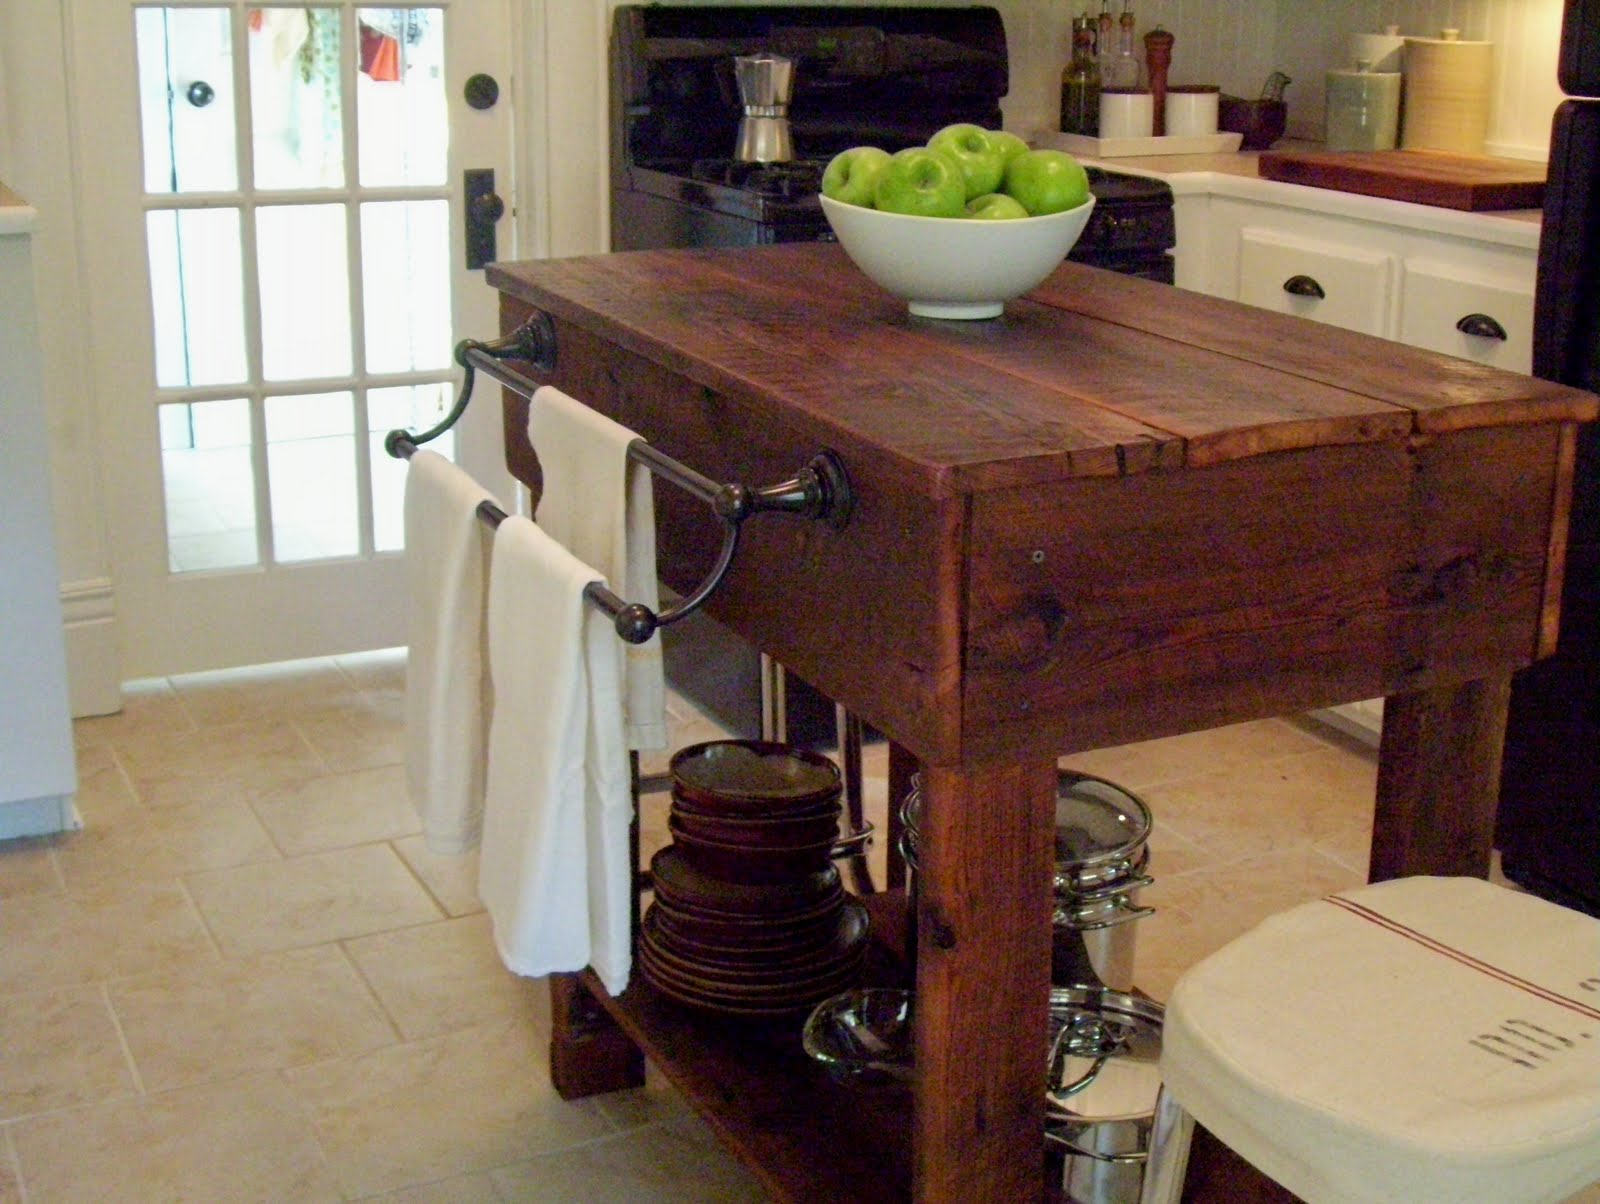 Build kitchen island table - How To Build A Rustic Kitchen Table Island